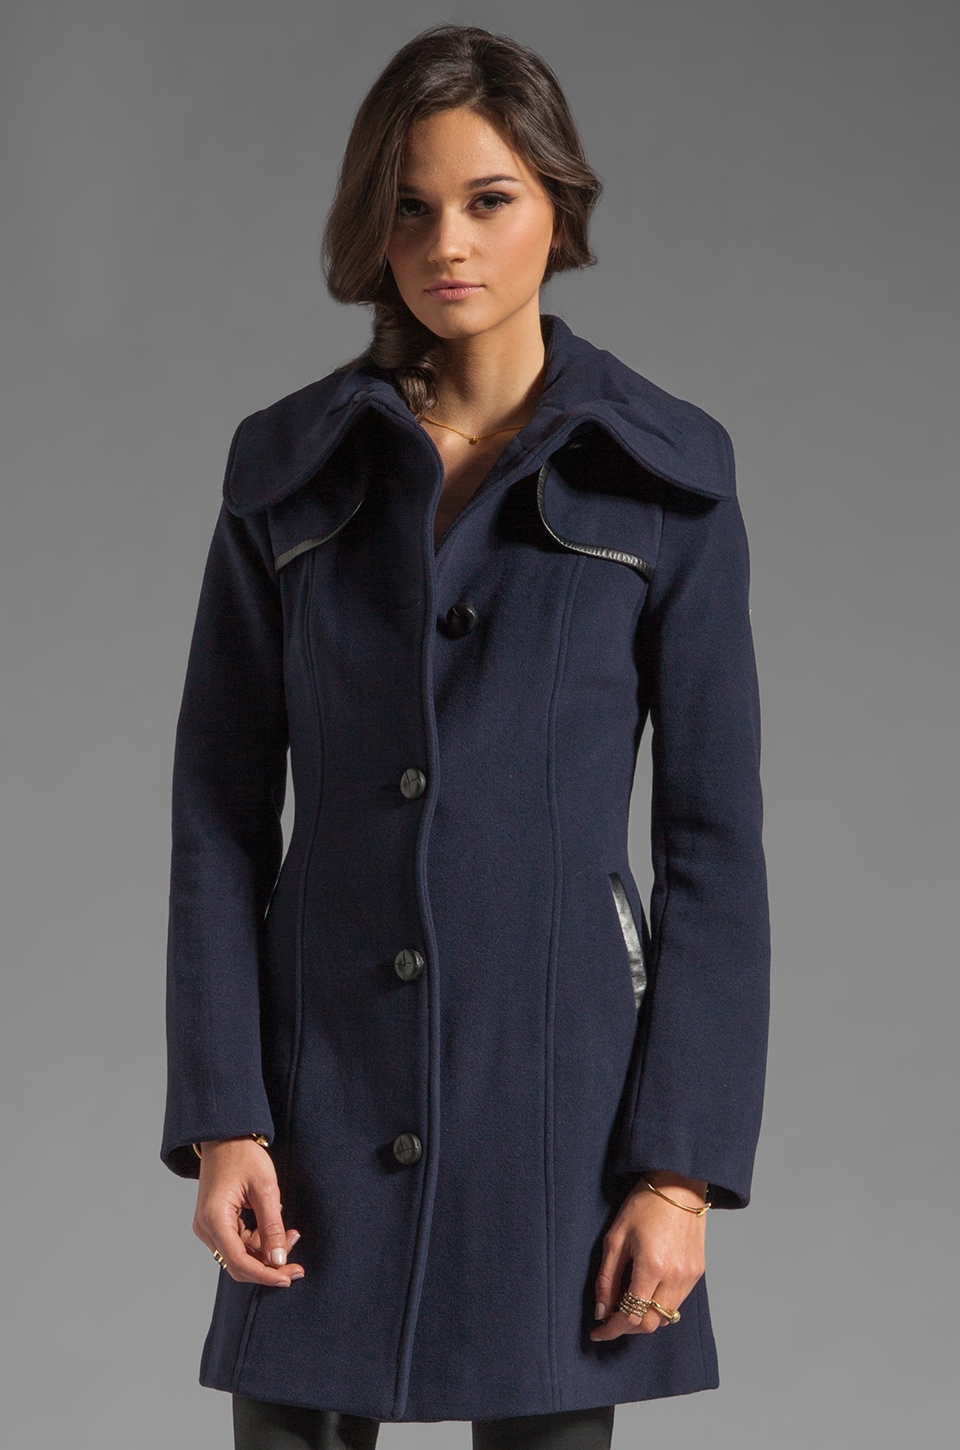 Mackage Janina Coat in Ink